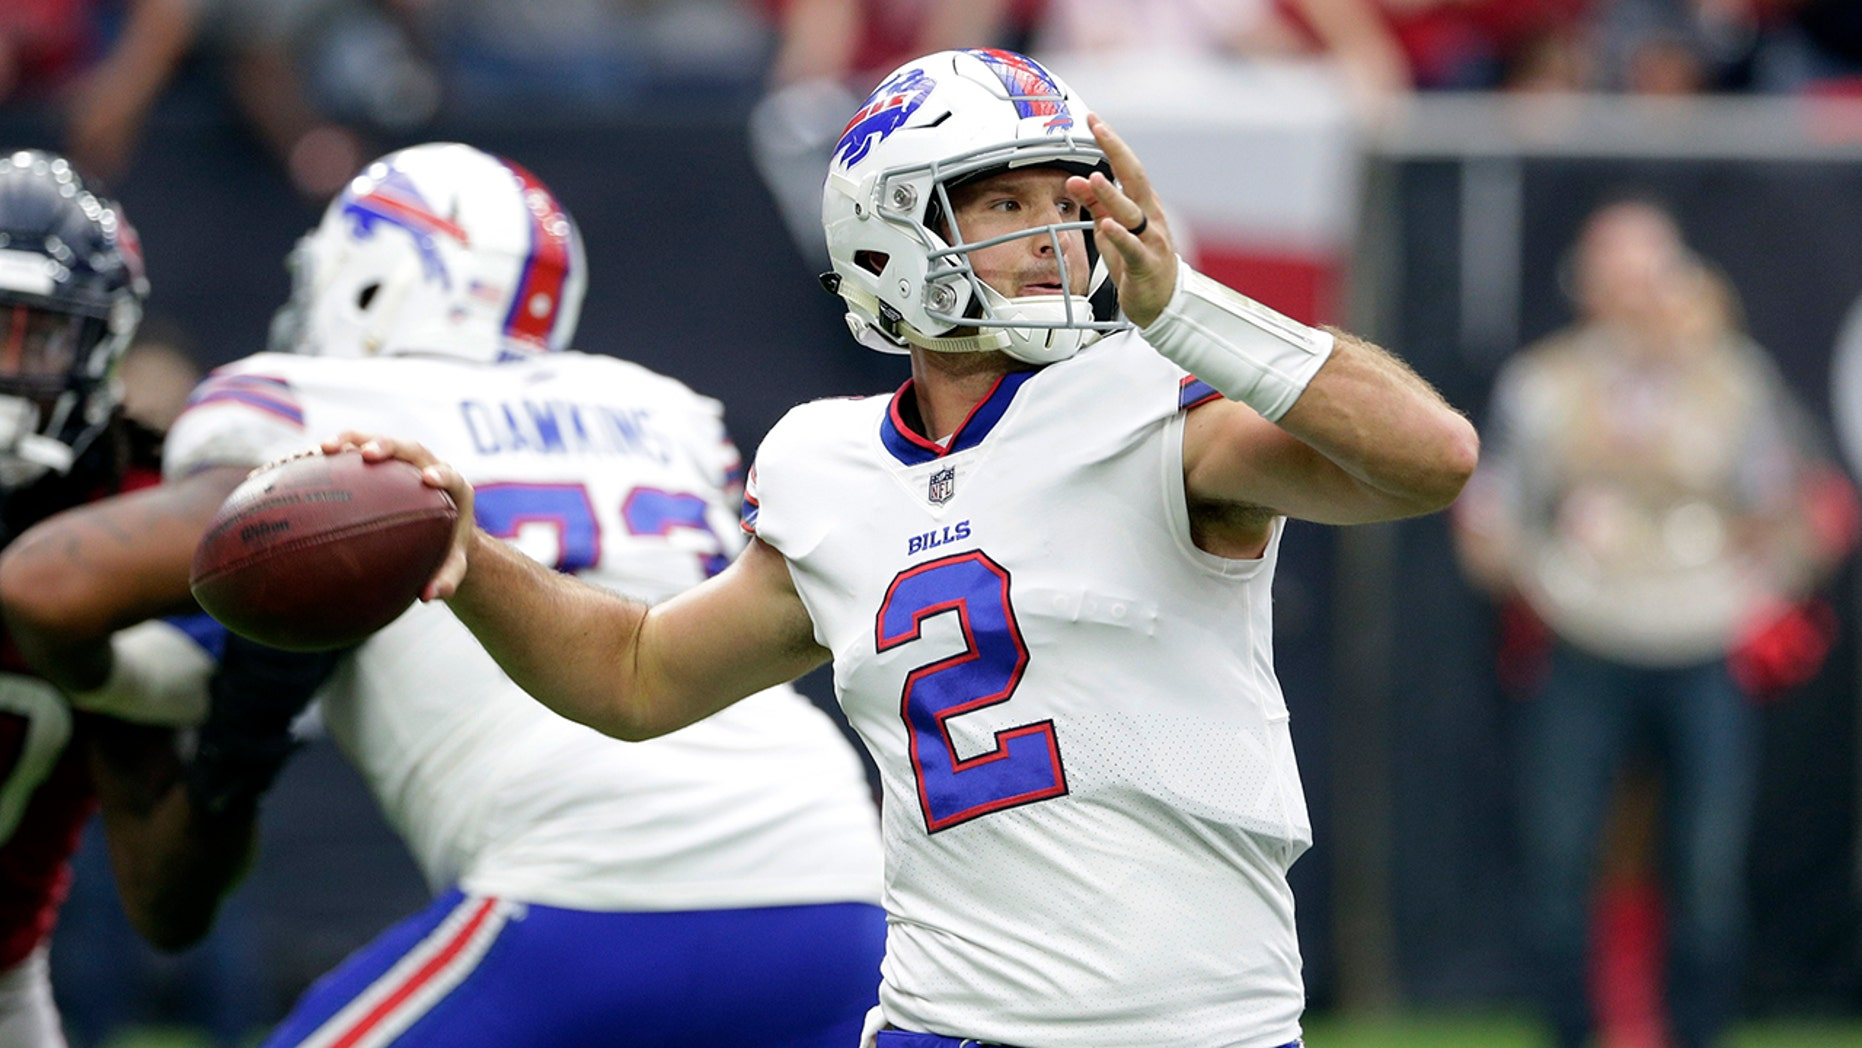 finest selection 488d7 86e35 Buffalo Bills fans launch GoFundMe to get QB Nathan Peterman ...